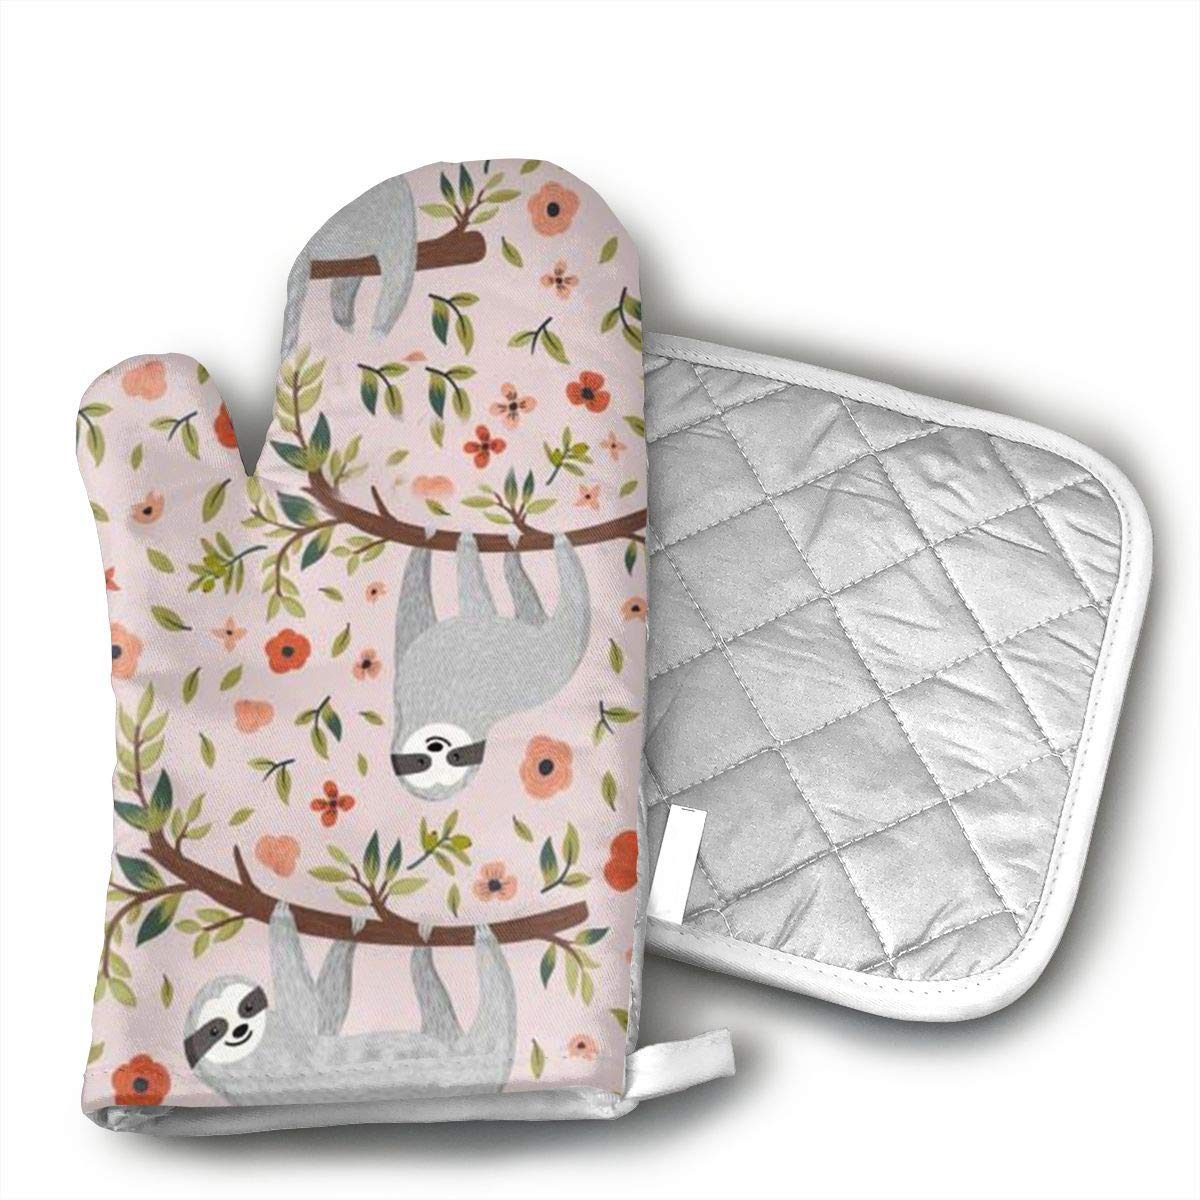 Pink Sloth Cotton Oven Mitts Pot Holders Set - Kitchen Oven Mitt Heat Resistant, Non-Slip Grip Oven Gloves PotholderCooking,Baking & BBQ,